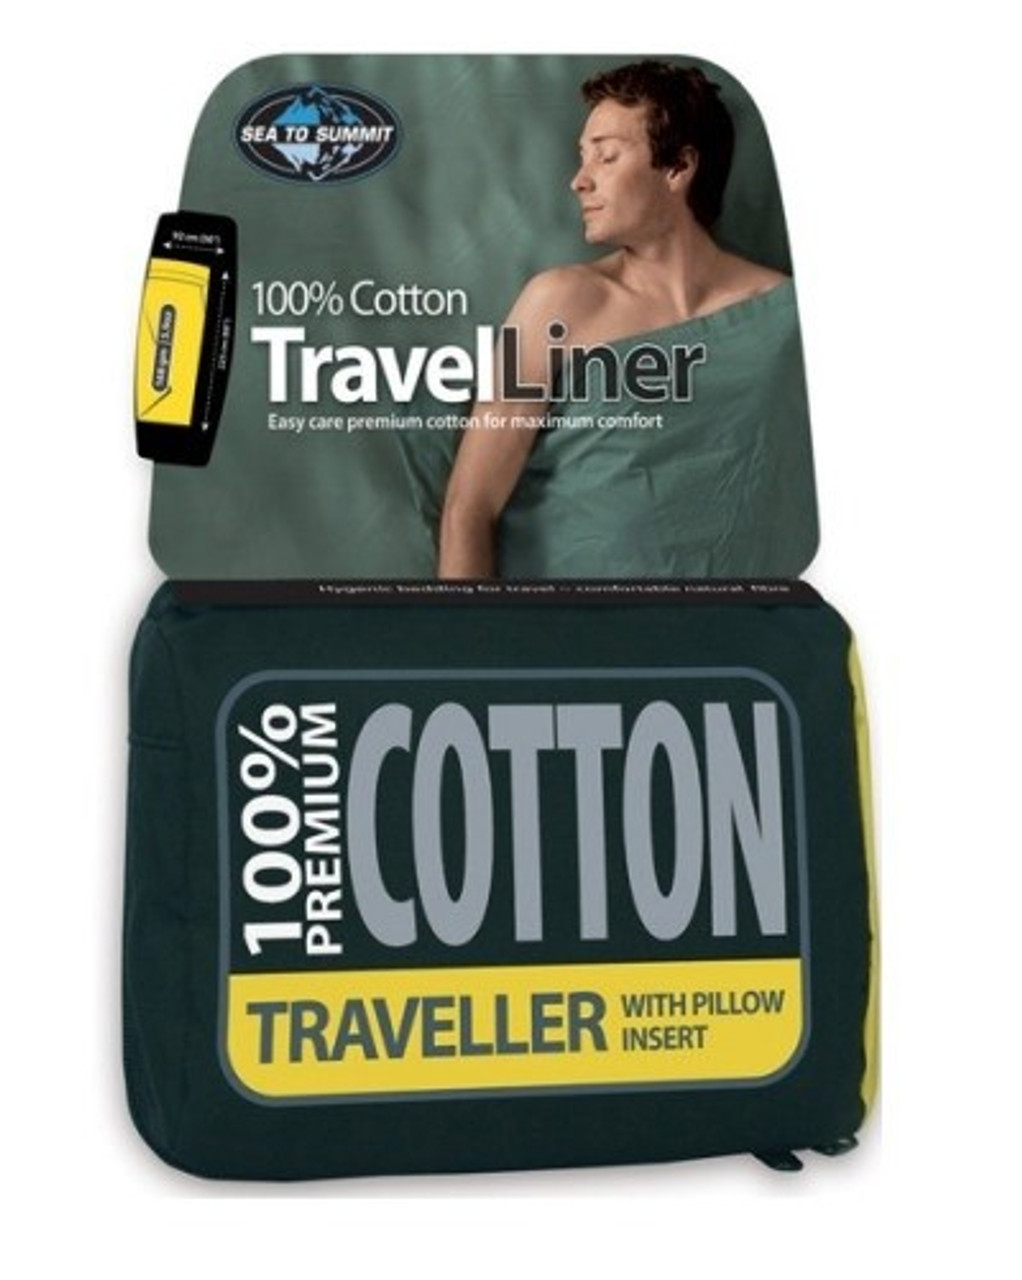 Sea to Summit Cotton Liner Traveller